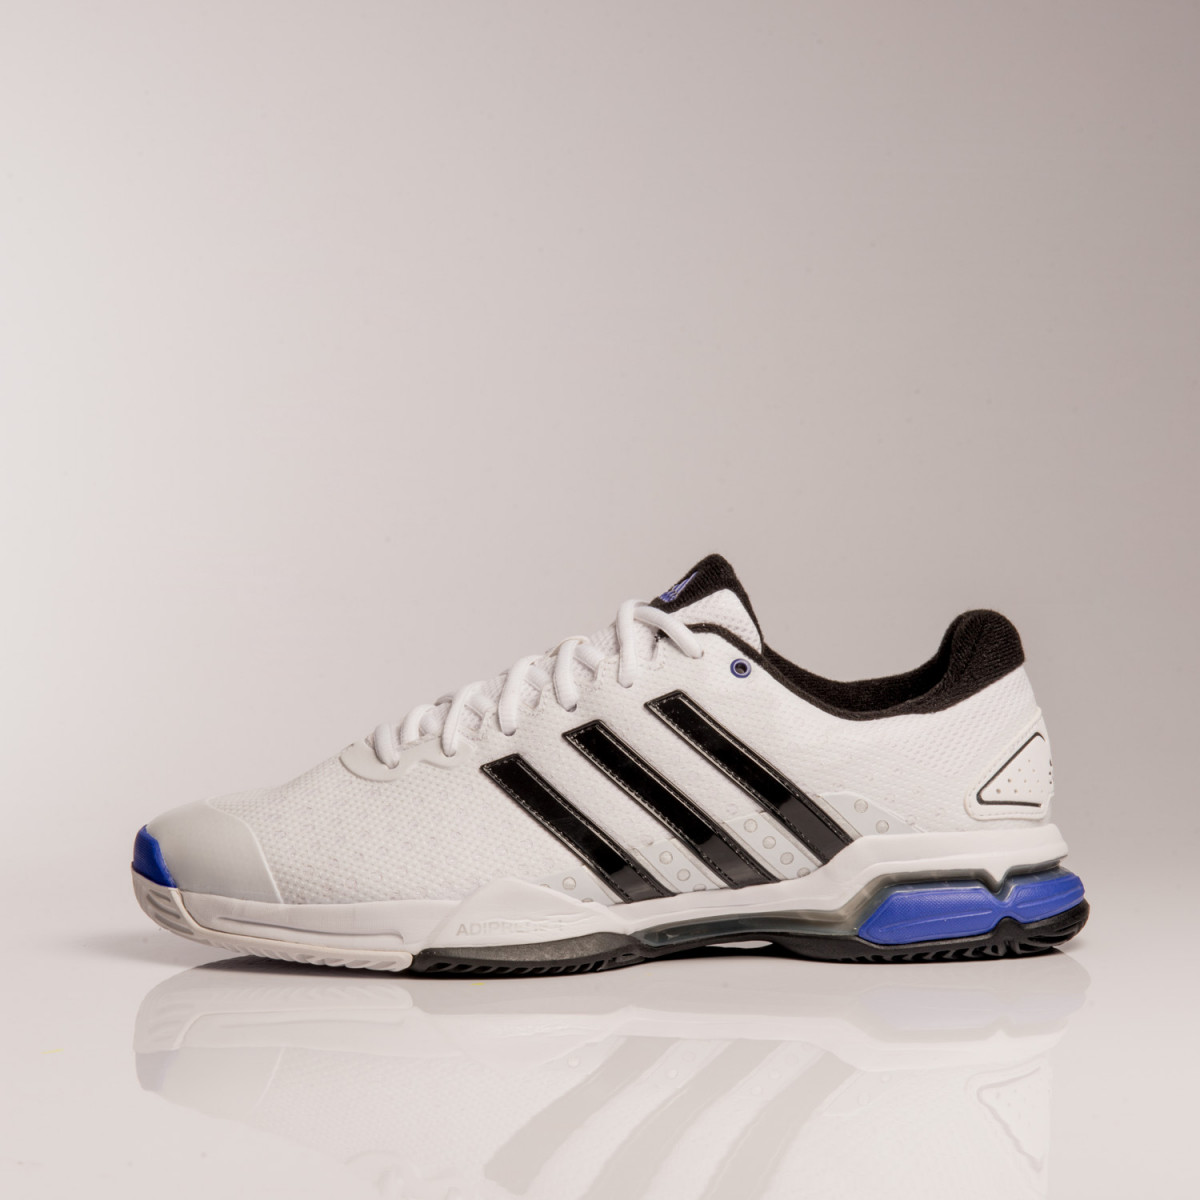 ZAPATILLAS ADIDAS BARRICADE TEAM 4